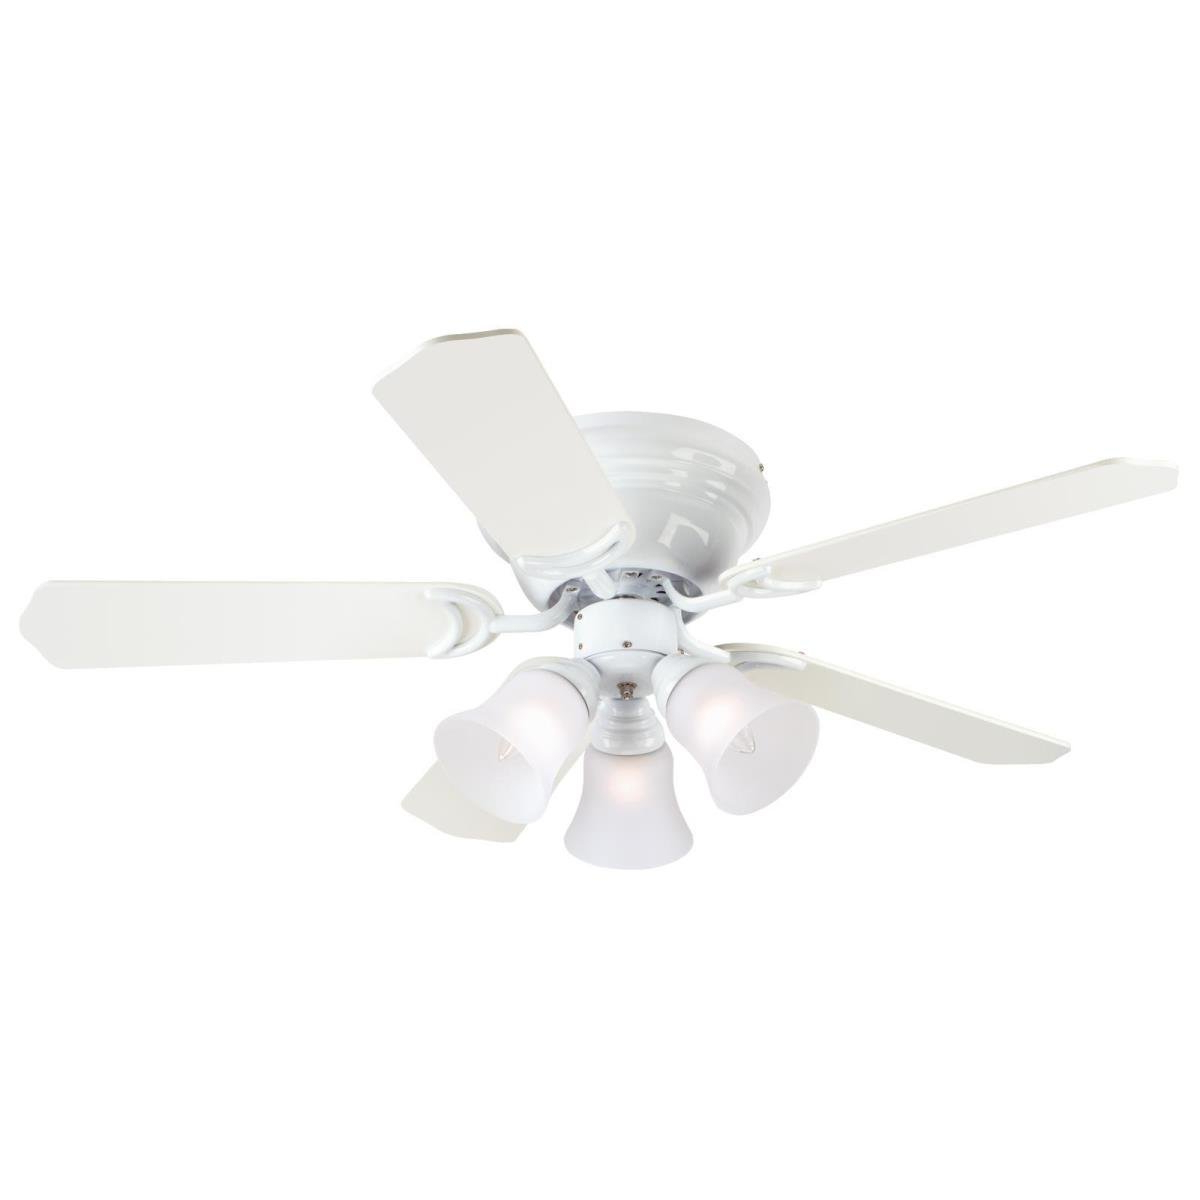 "42"" Rosenblatt 5 Blade Ceiling Fan With Regard To Widely Used Cerro 5 Blade Ceiling Fans (View 18 of 20)"